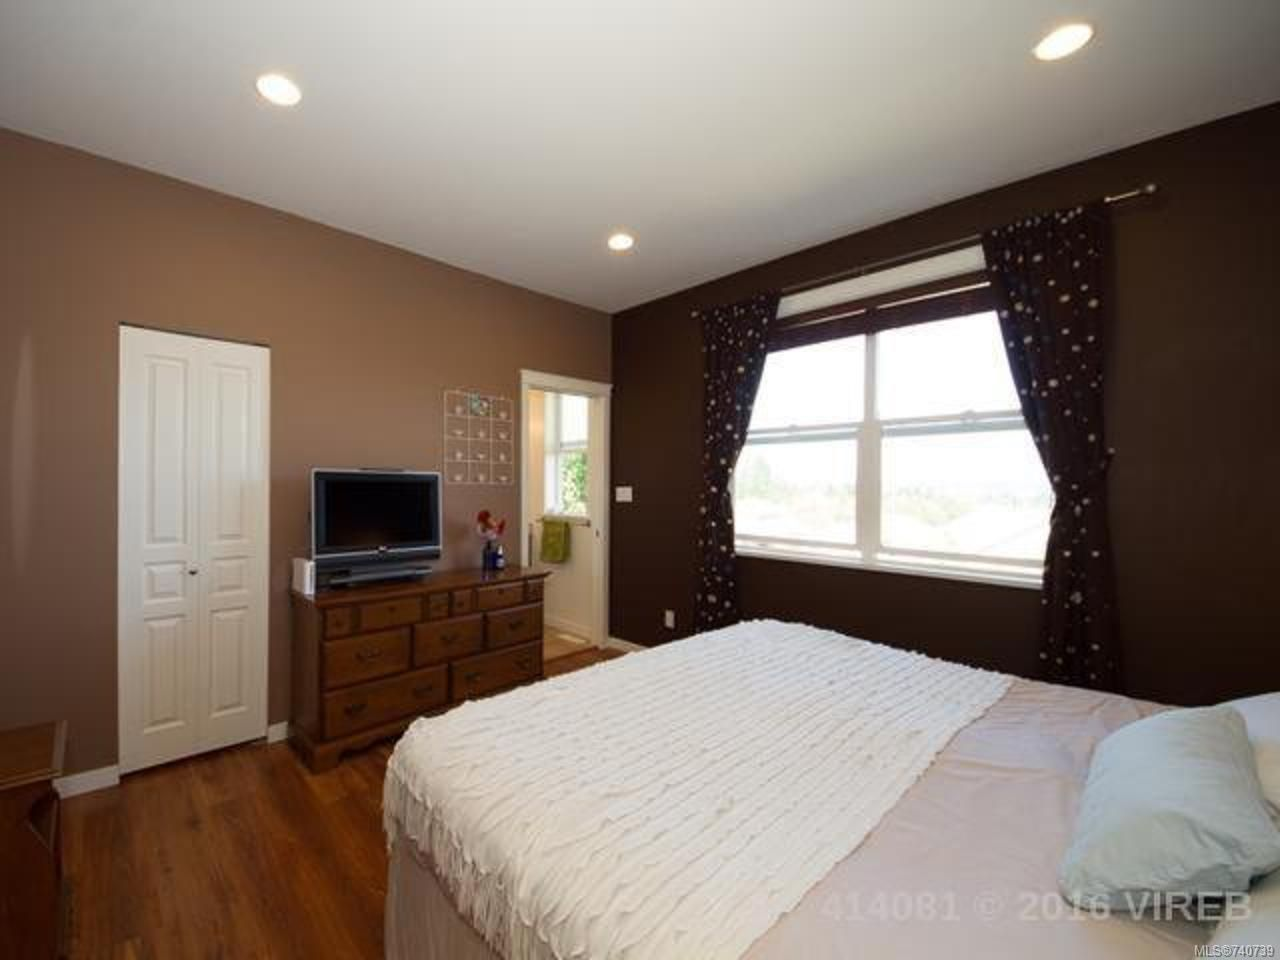 Photo 11: Photos: 632 Nelson Rd in CAMPBELL RIVER: CR Willow Point House for sale (Campbell River)  : MLS®# 740739